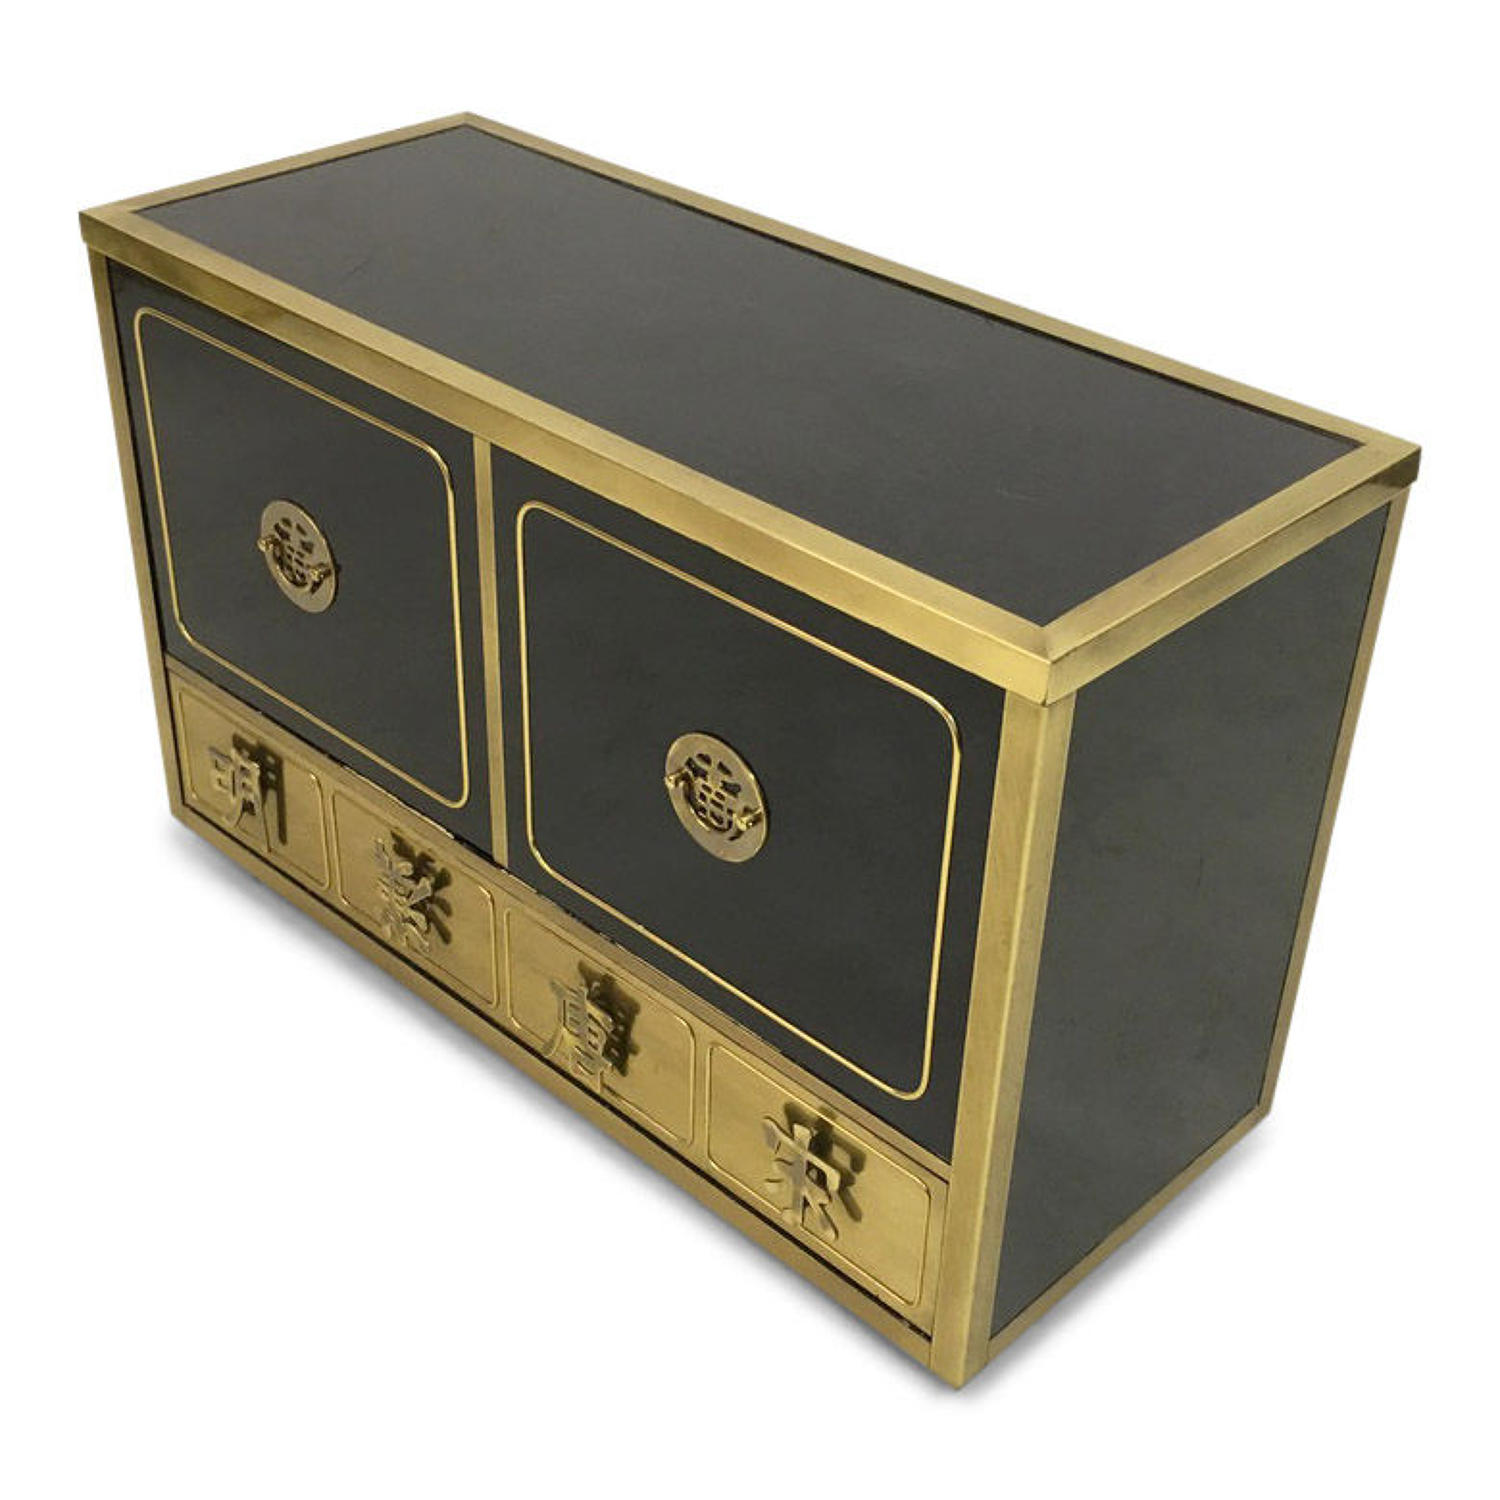 Black lacquer and brass cabinet by Mastercraft